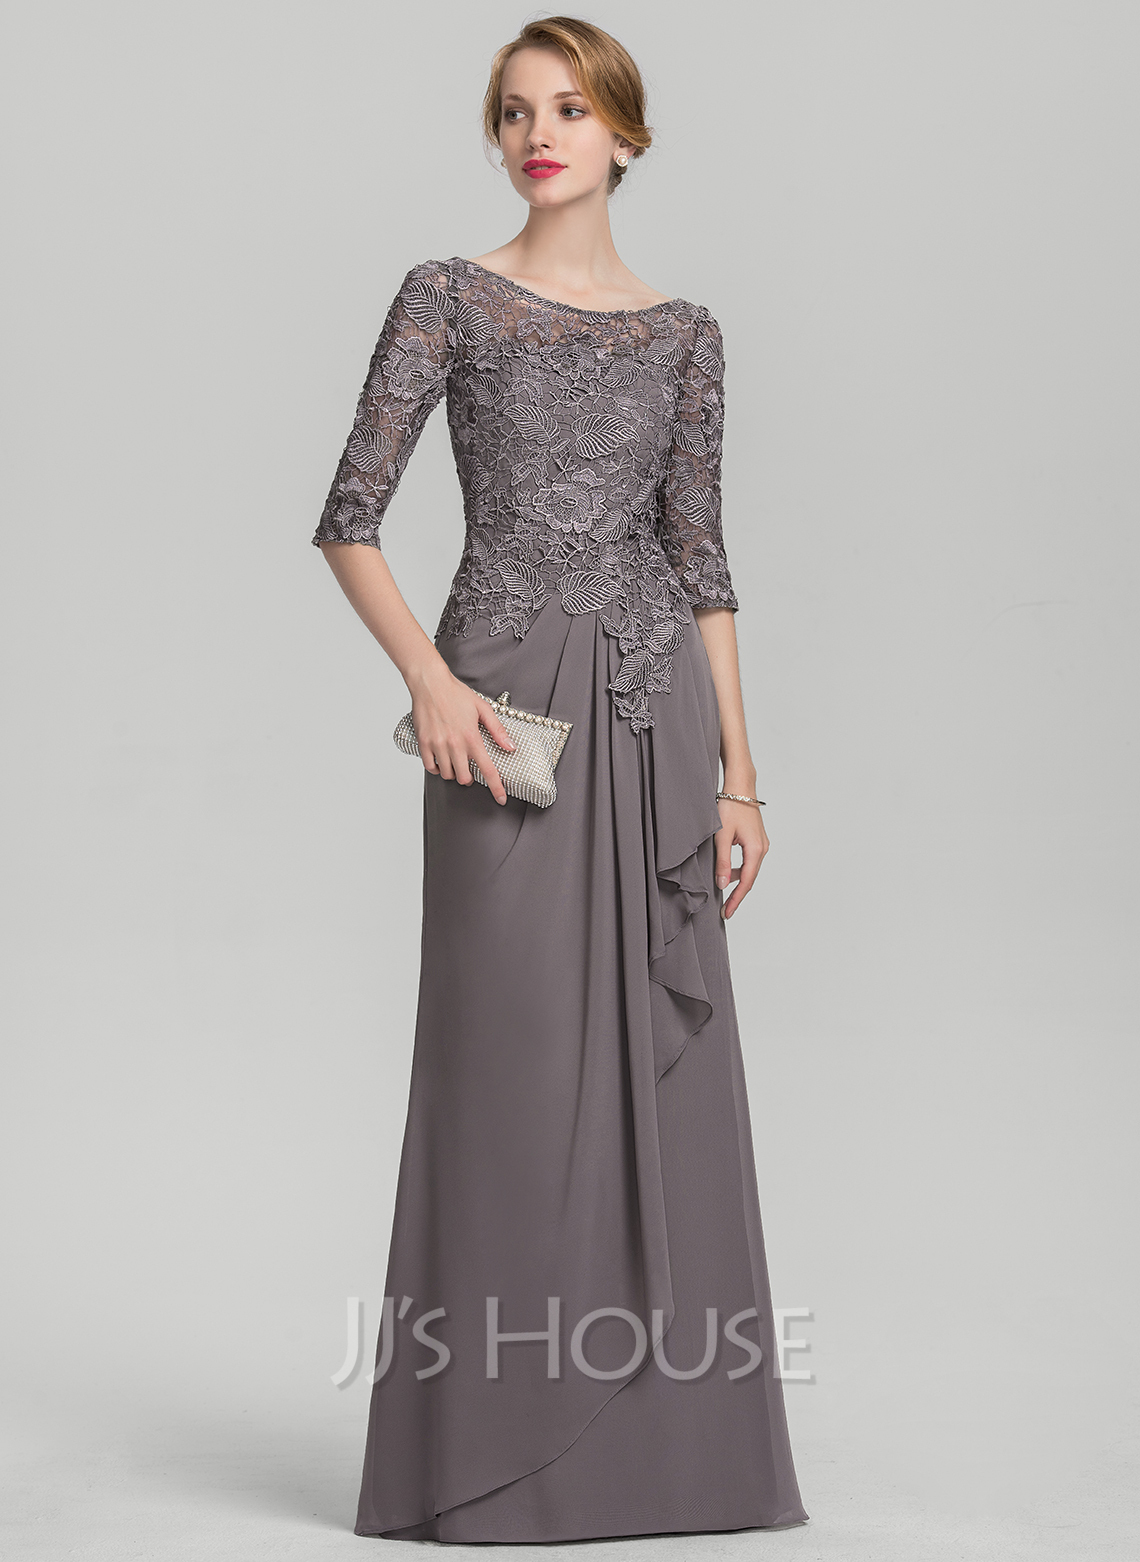 Mother Of The Bride Mother Of The Groom Dresses 2019 Jj S House